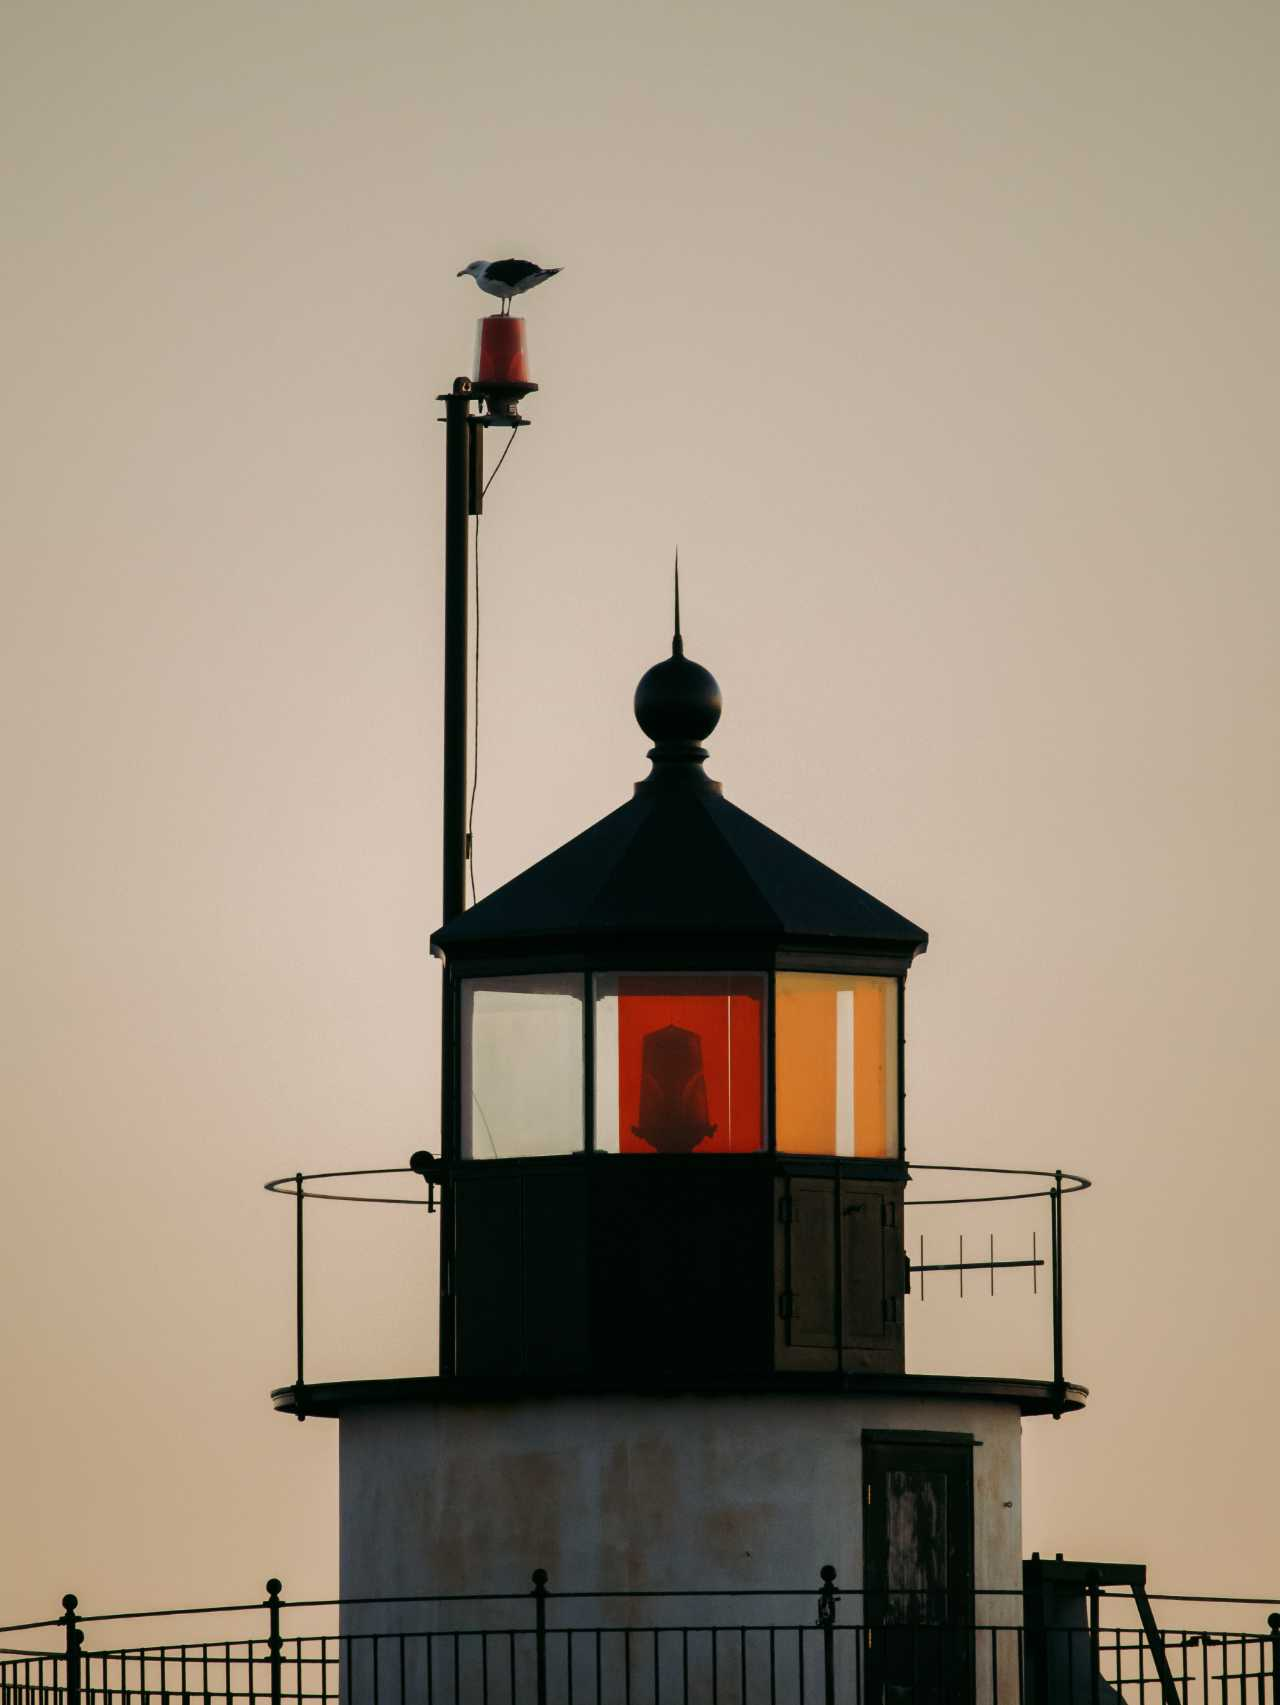 A gull perched on top of lighthouse